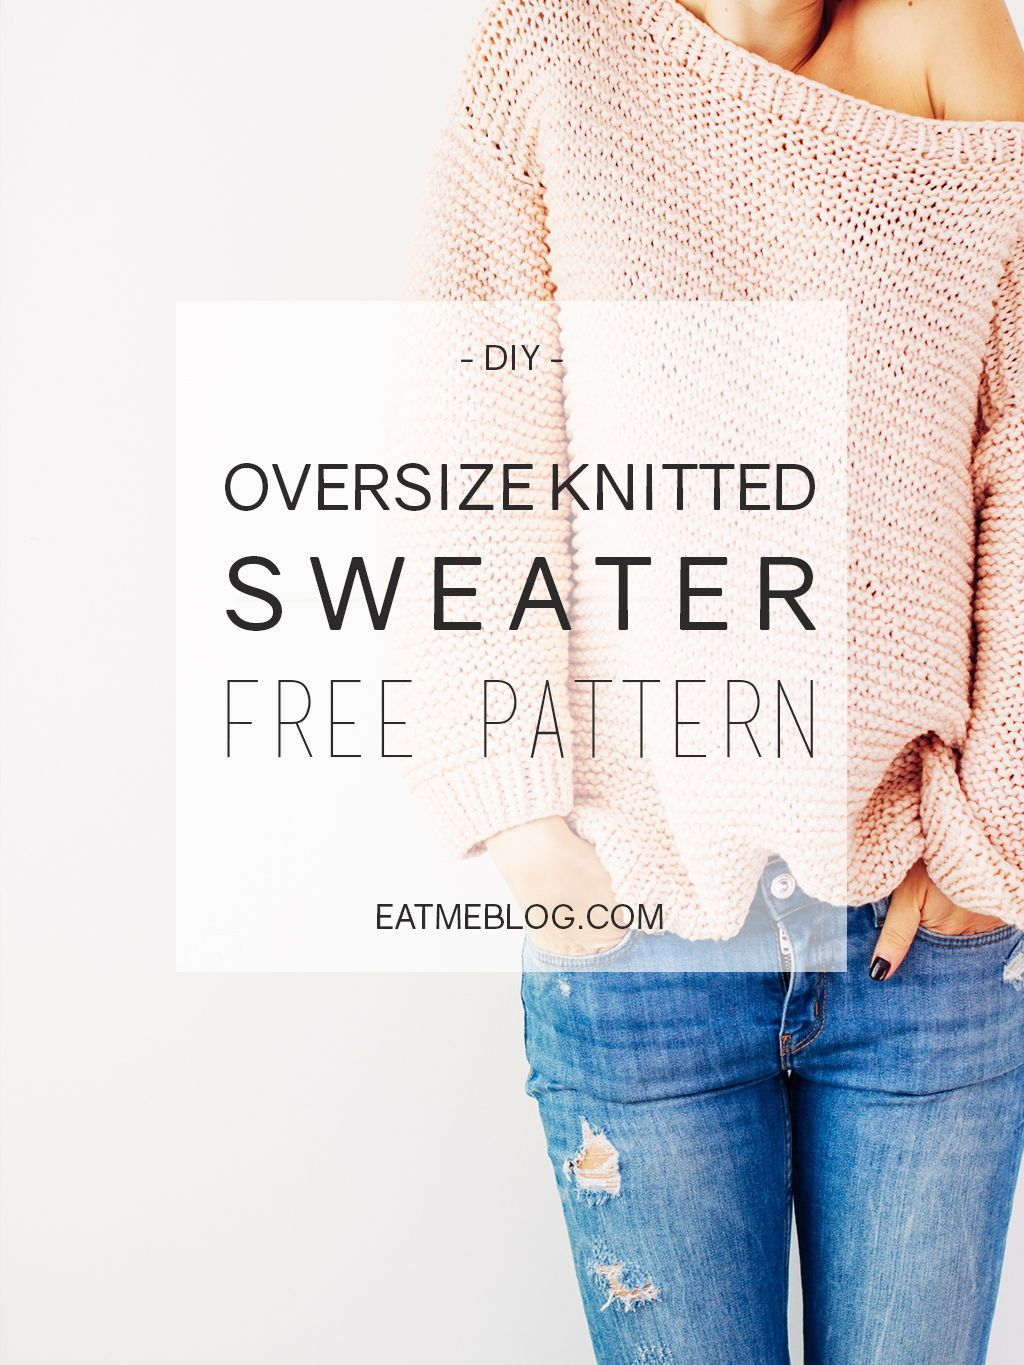 OVERSIZED SWEATER KNITTING PATTERN | Cosas que ponerse